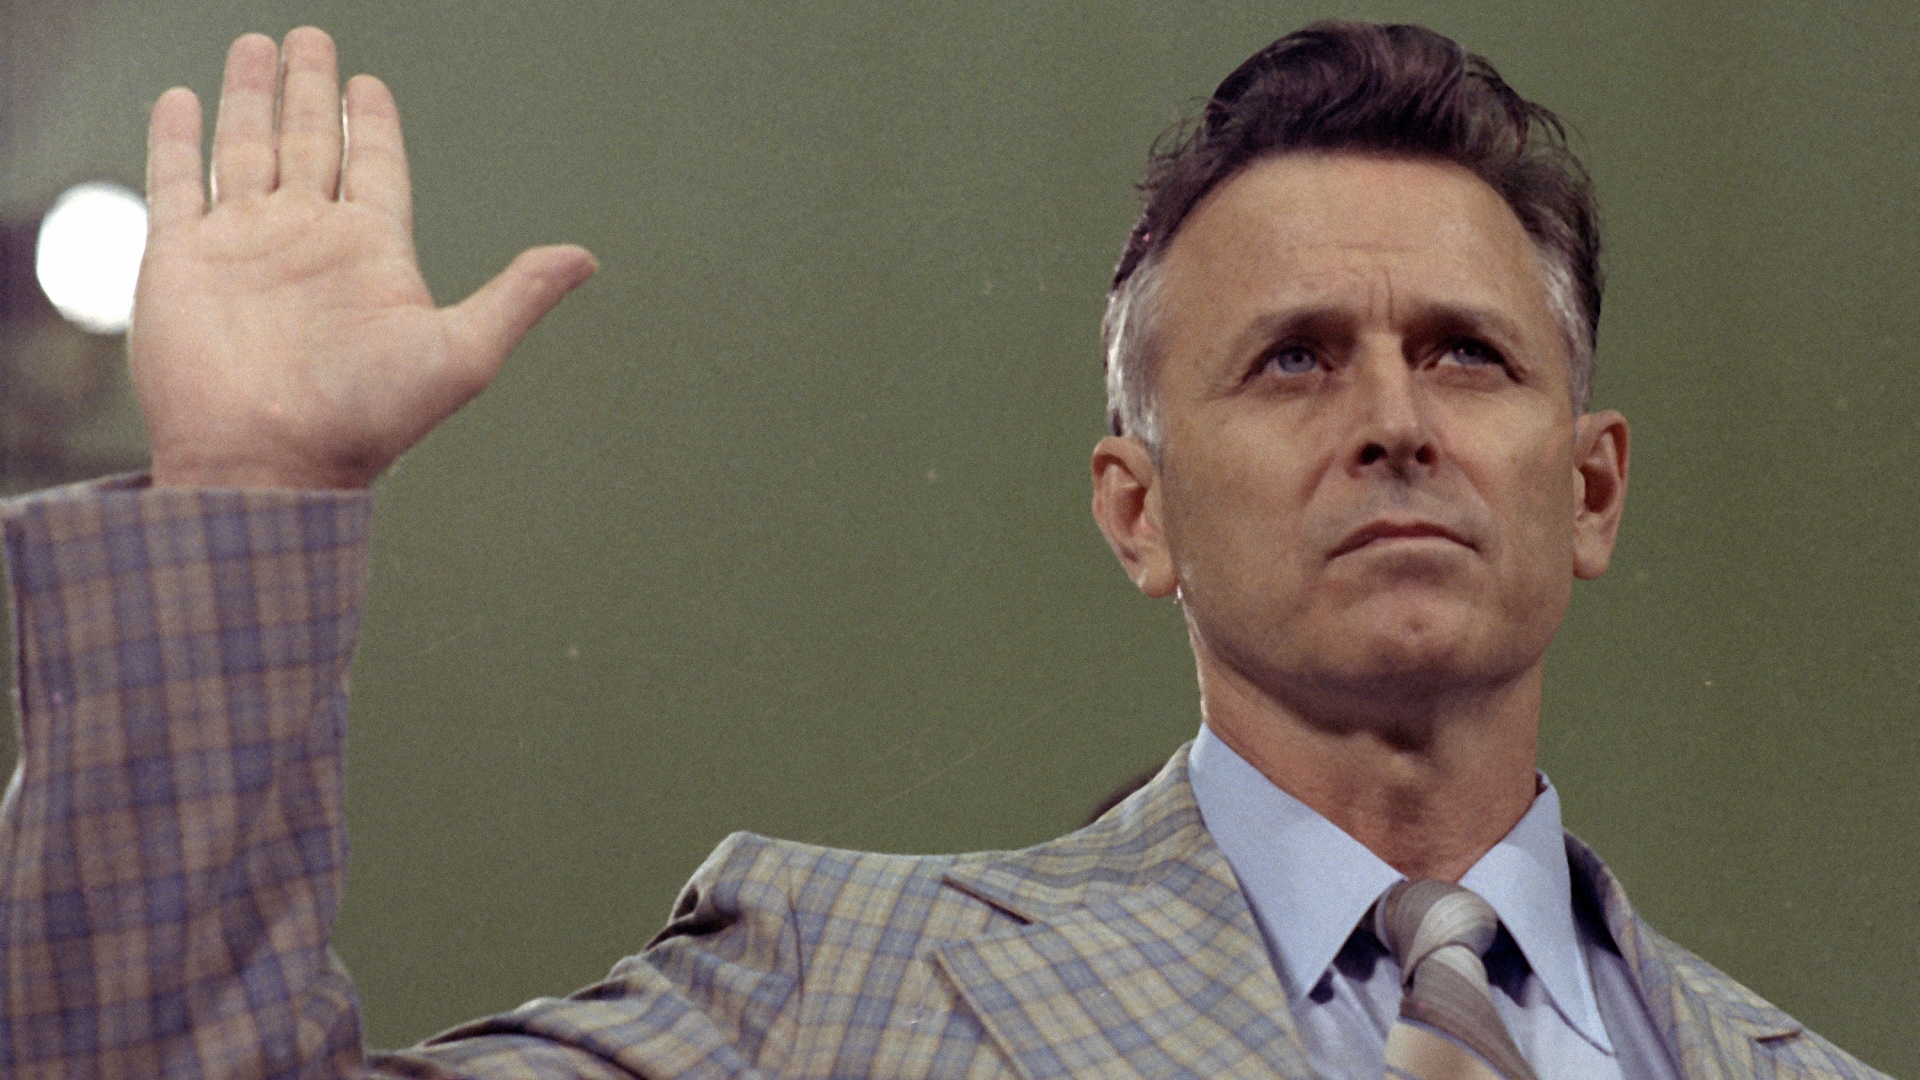 James Earl Ray, convicted killer of civil rights leader Dr. Martin Luther King Jr., shown on August 16, 1978, being sworn in prior to testifying before the House Select Committee on Assassinations in Washington. (Credit: AP Photo)